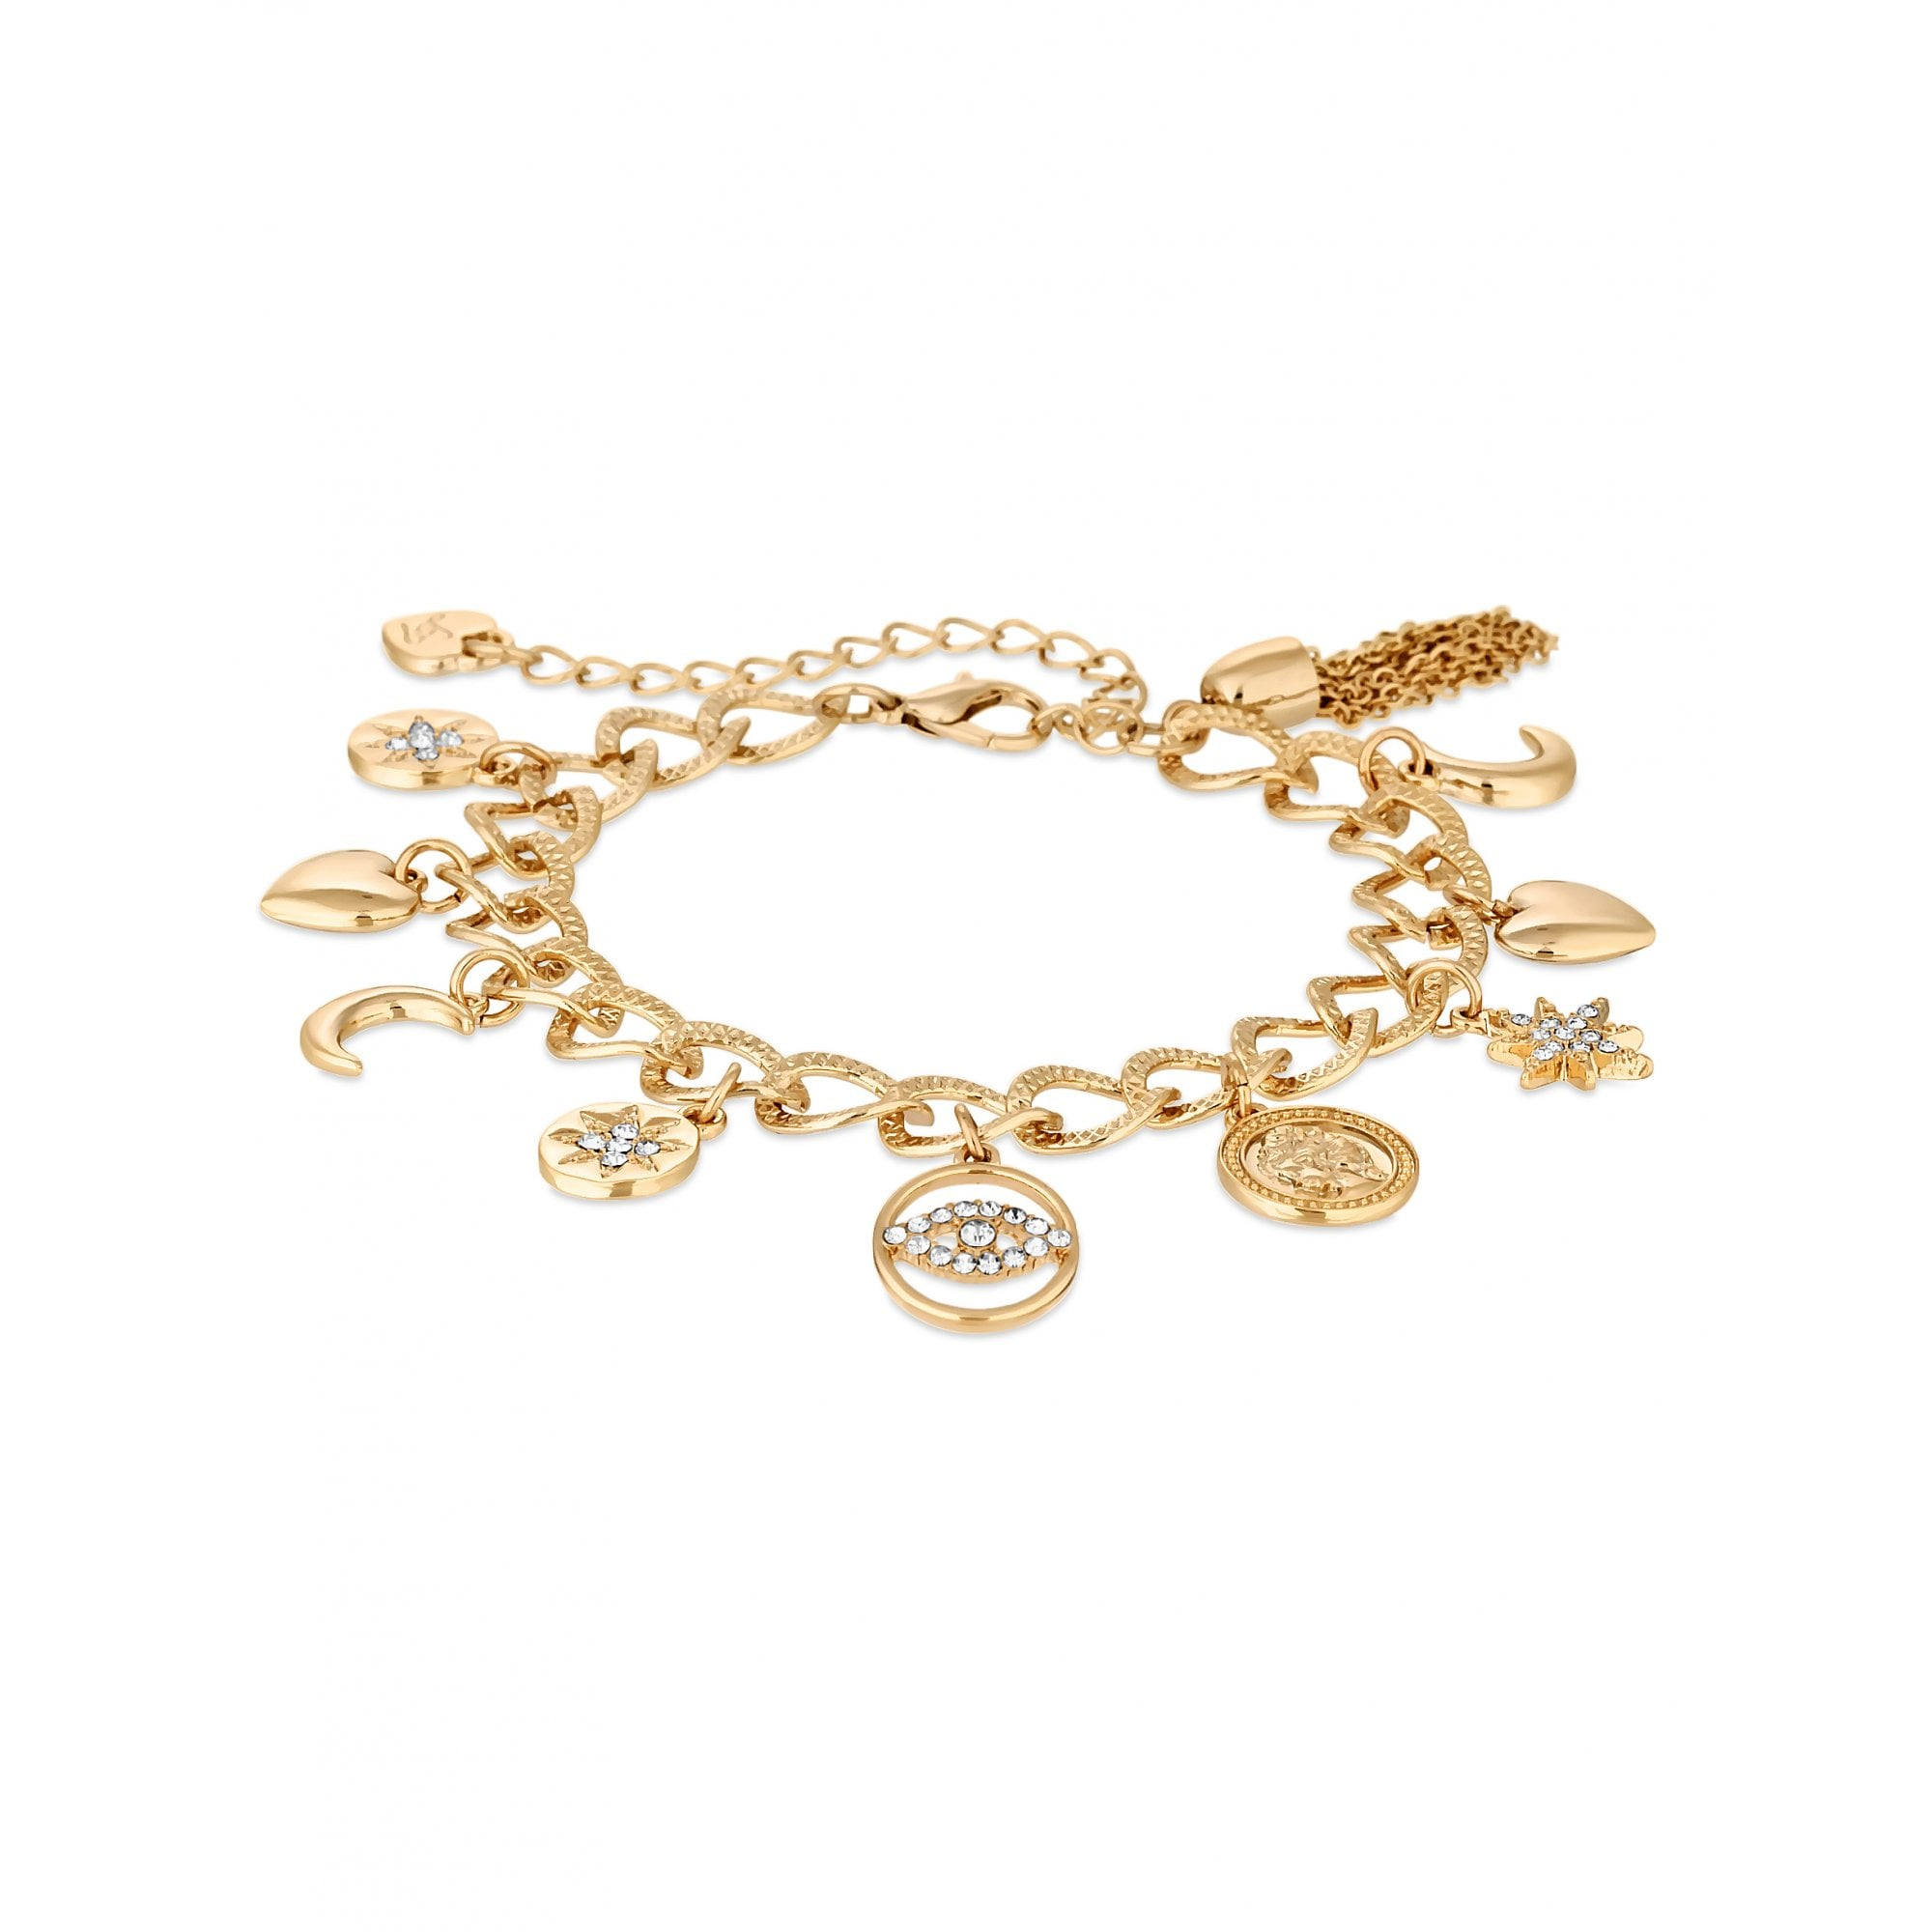 517a82903cc Lipsy Gold Plated Clear Celestial Charm Bracelet - Jewellery from ...